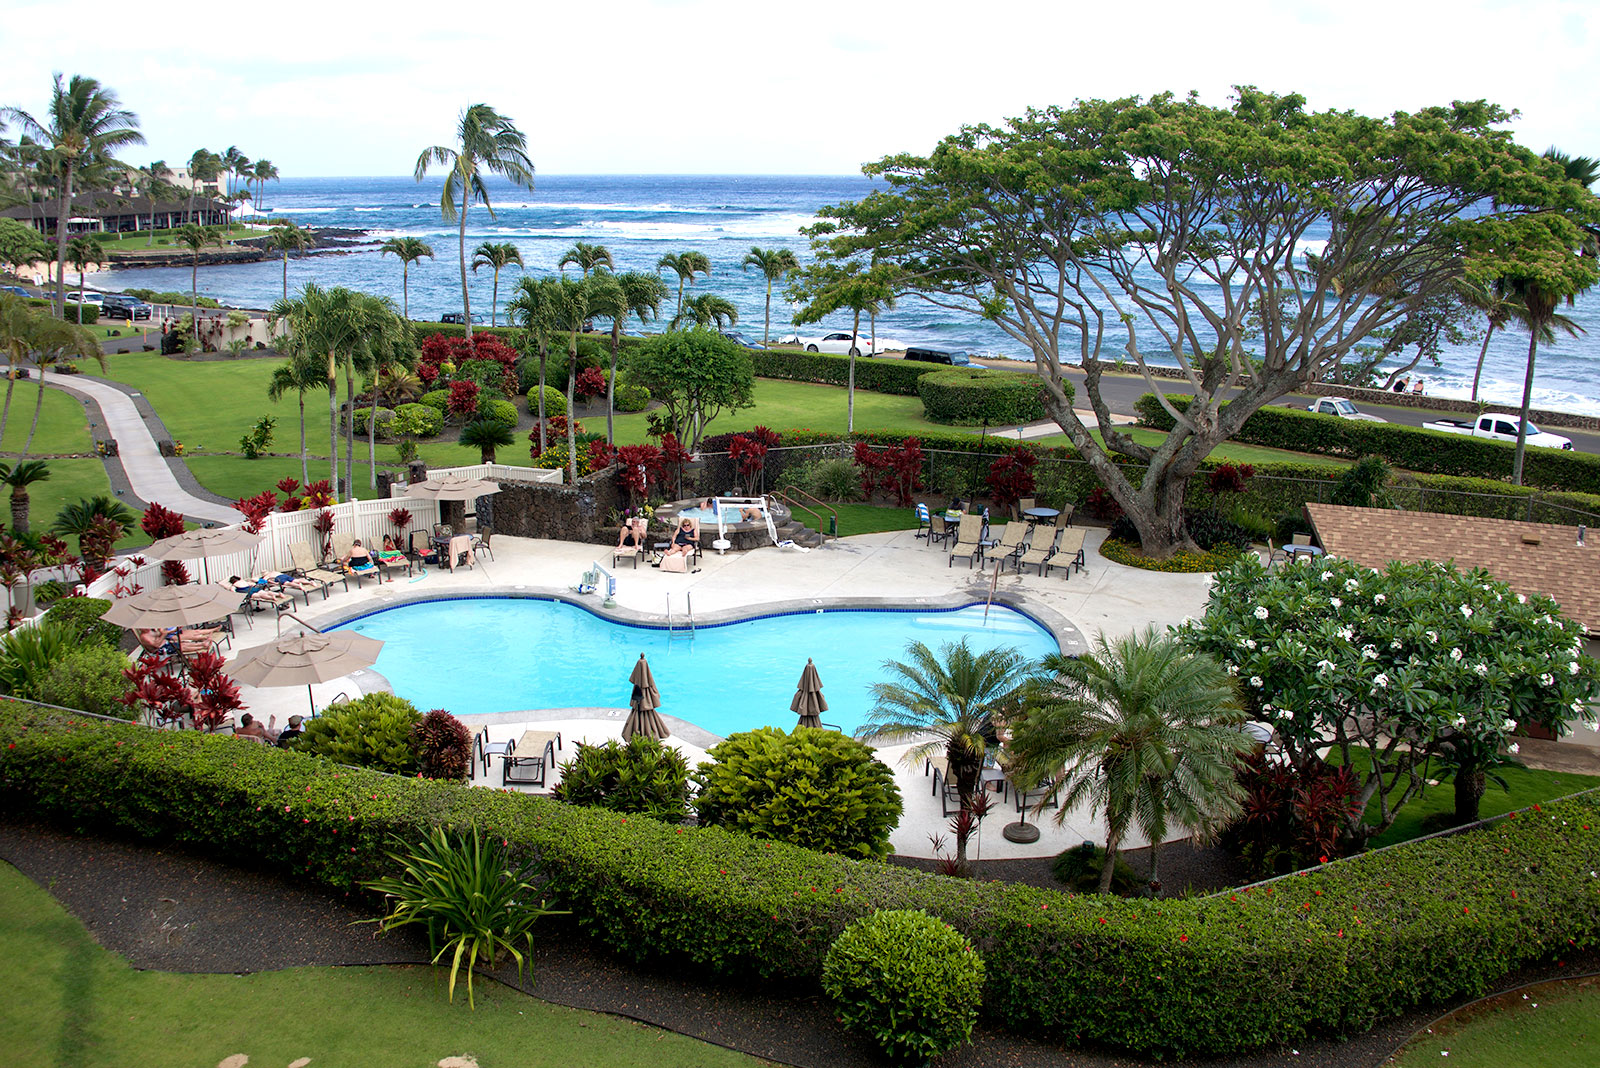 Lawai Beach Resort Kauai, timeshare resales